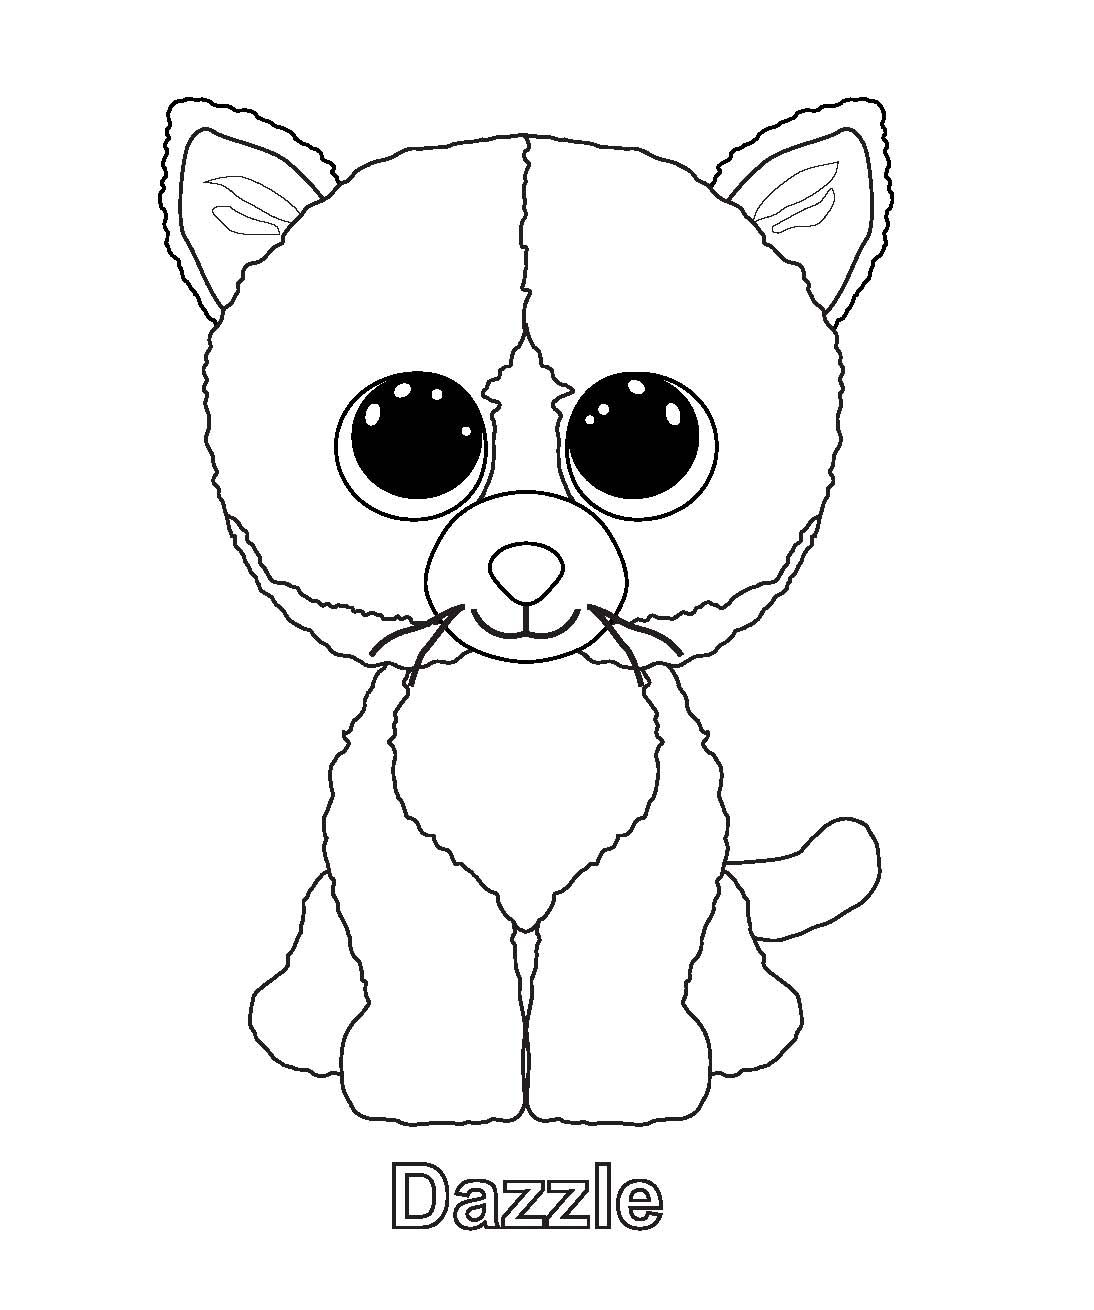 Dazzle Cat Beanie Boo Coloring Page